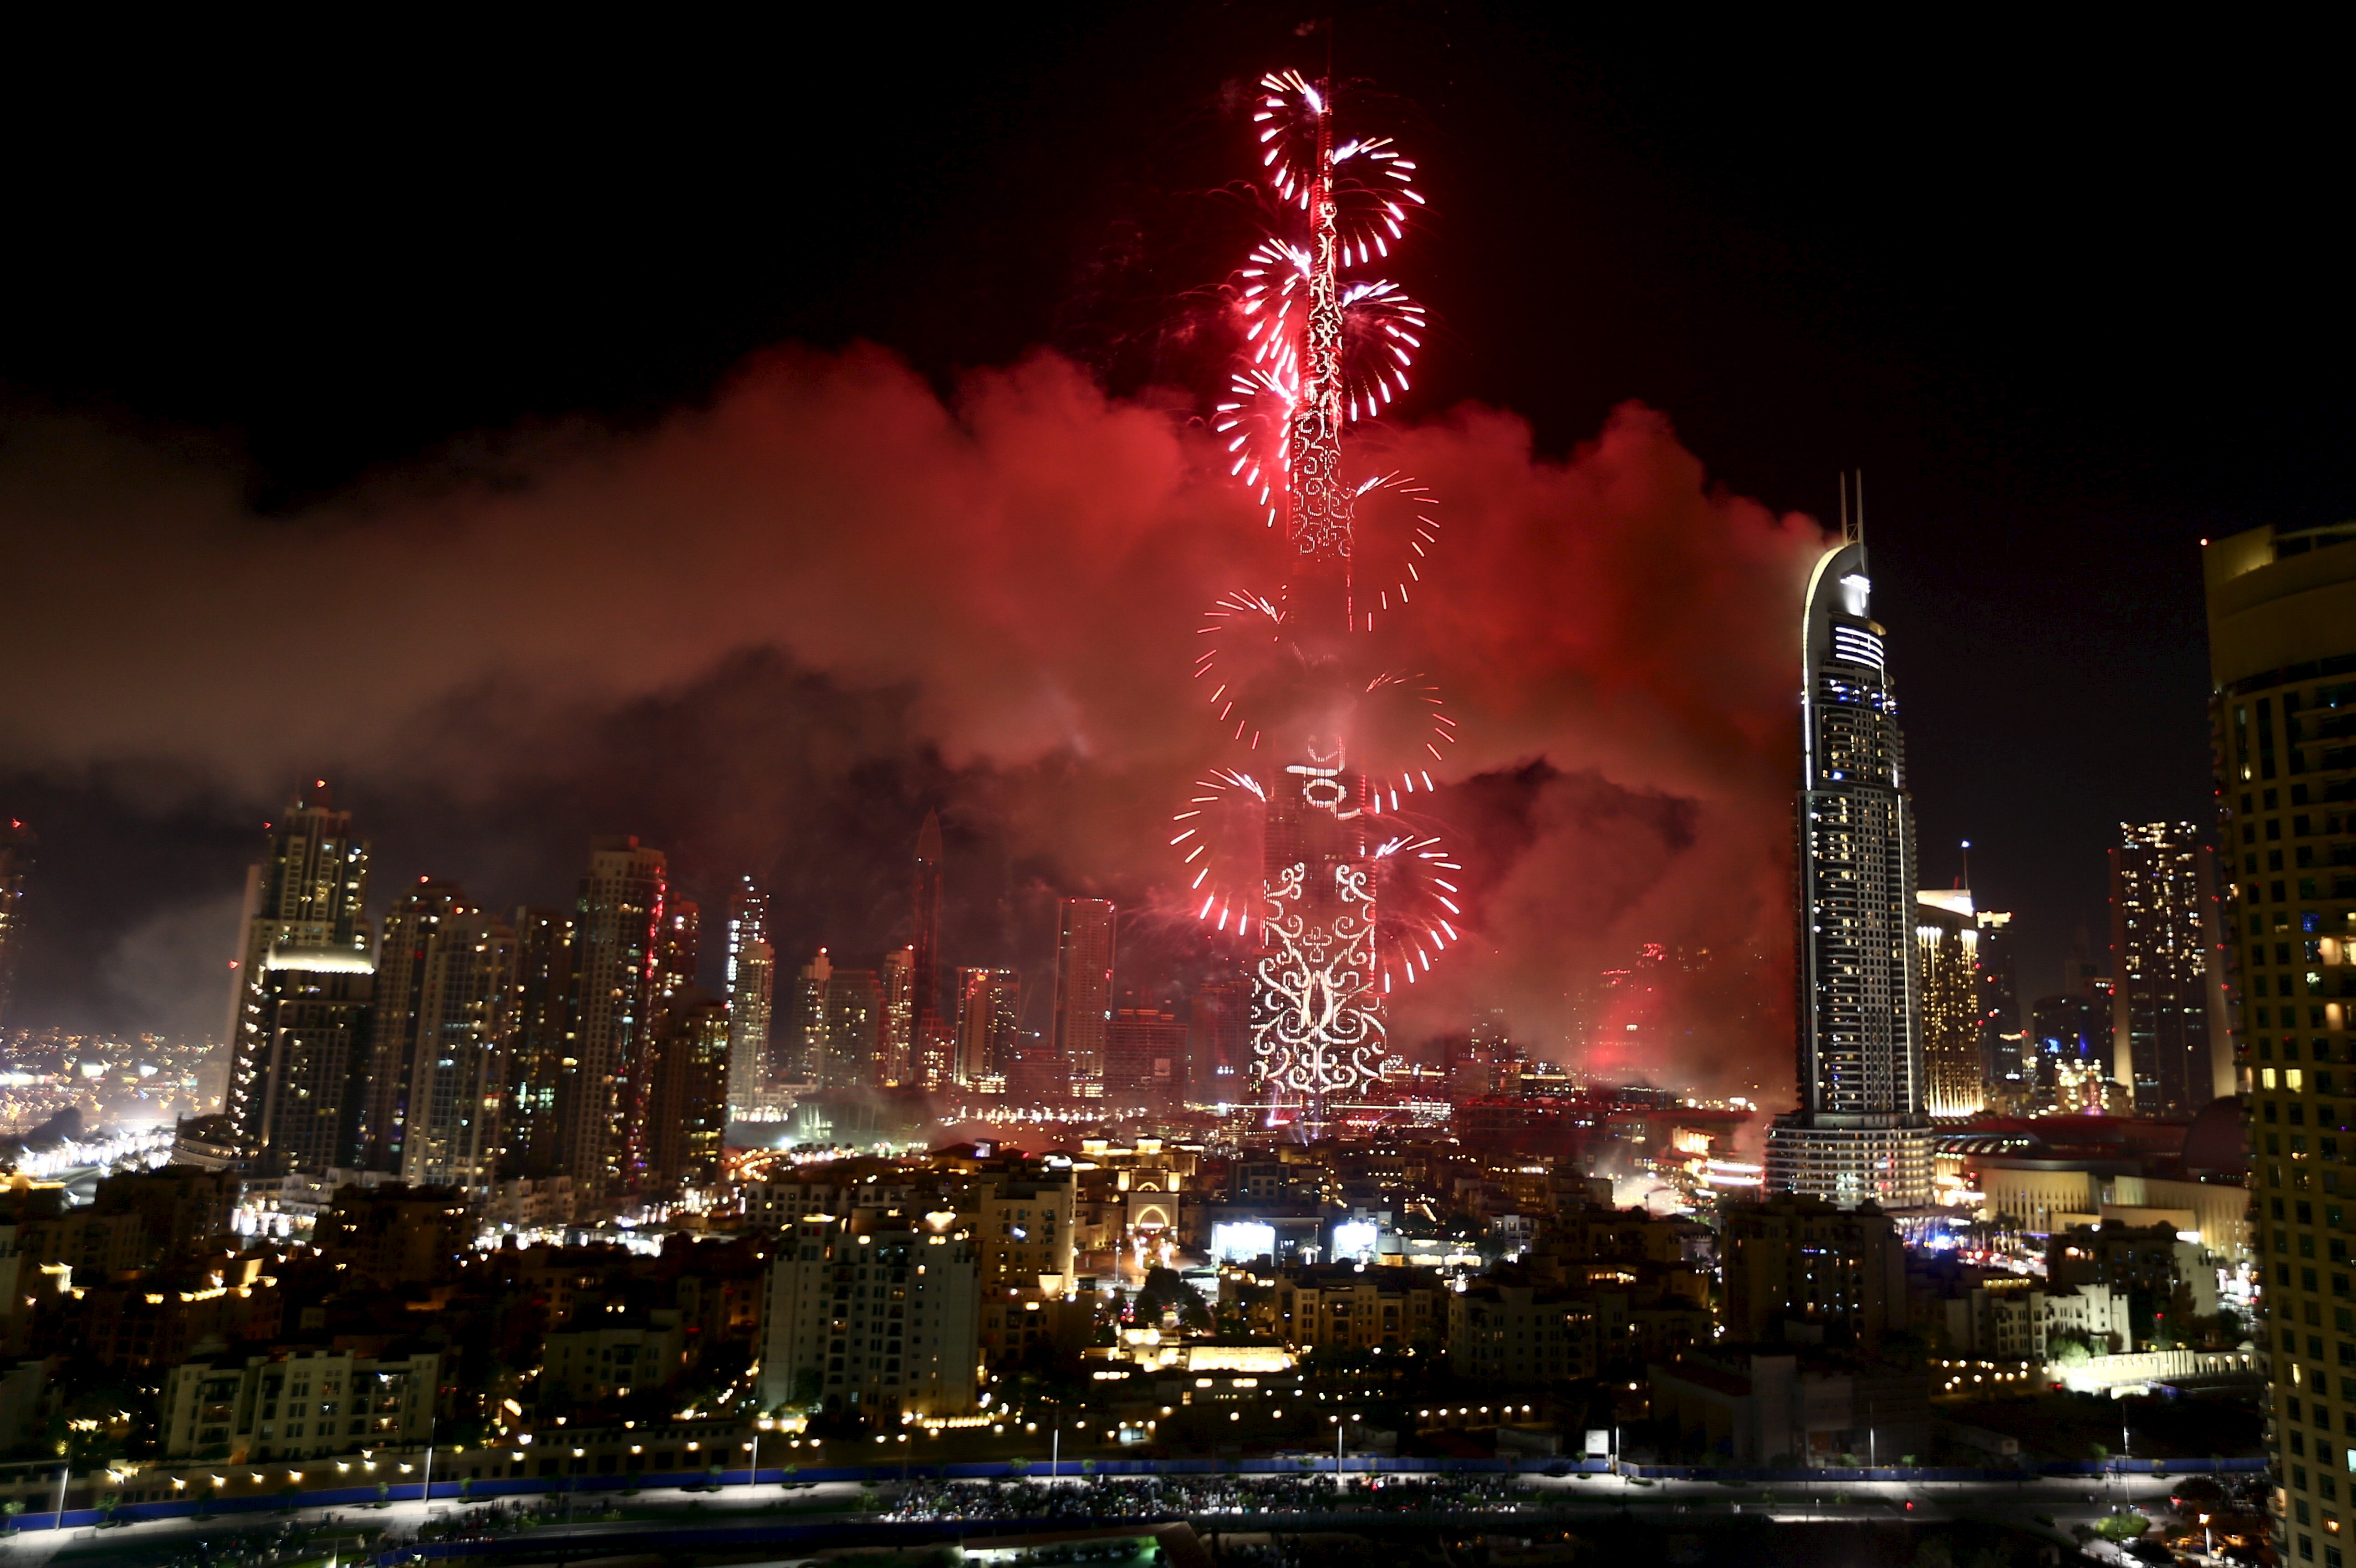 The Address Downtown Dubai hotel and residential block is seen engulfed by fire as fireworks explode over the Burj Khalifa, the tallest building in the world, during the New Year celebrations in Dubai. Photo by Hassan Al Rasi/Reuters